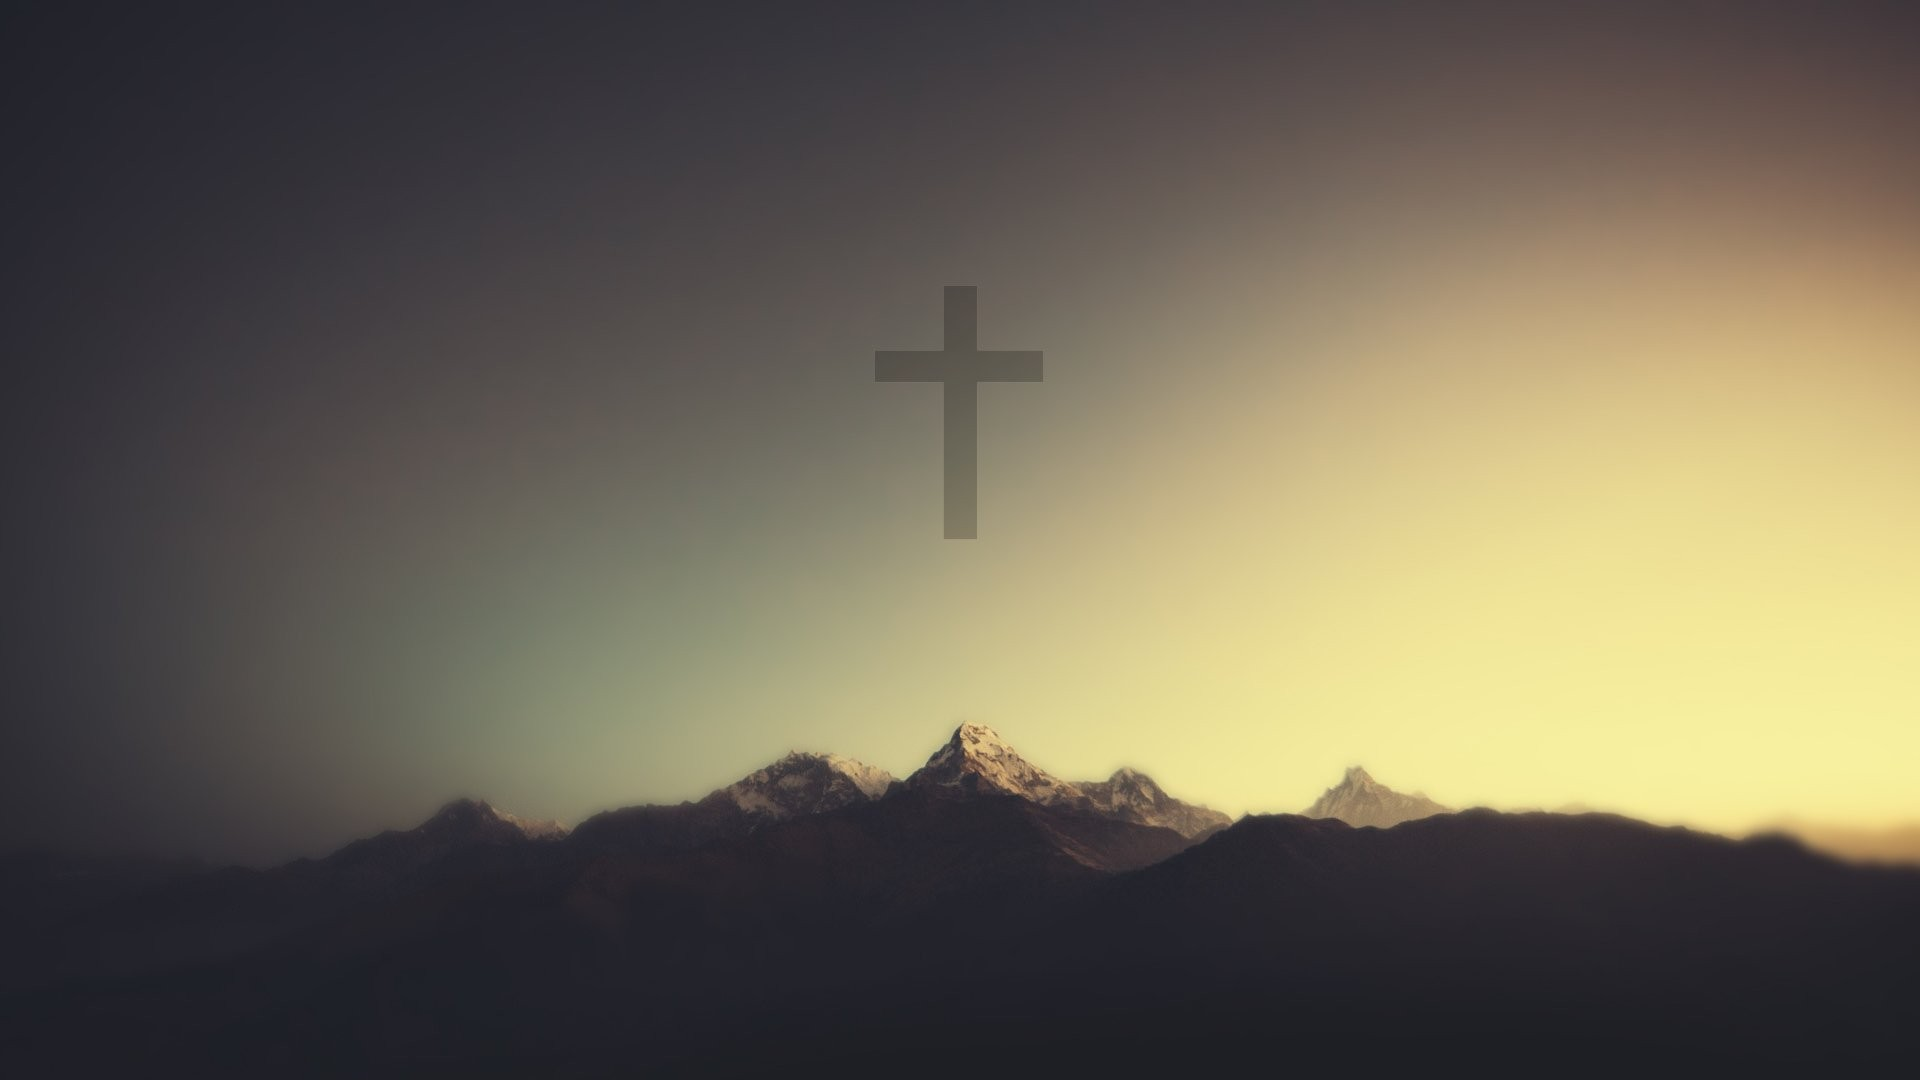 51 christian backgrounds 183�� download free high resolution